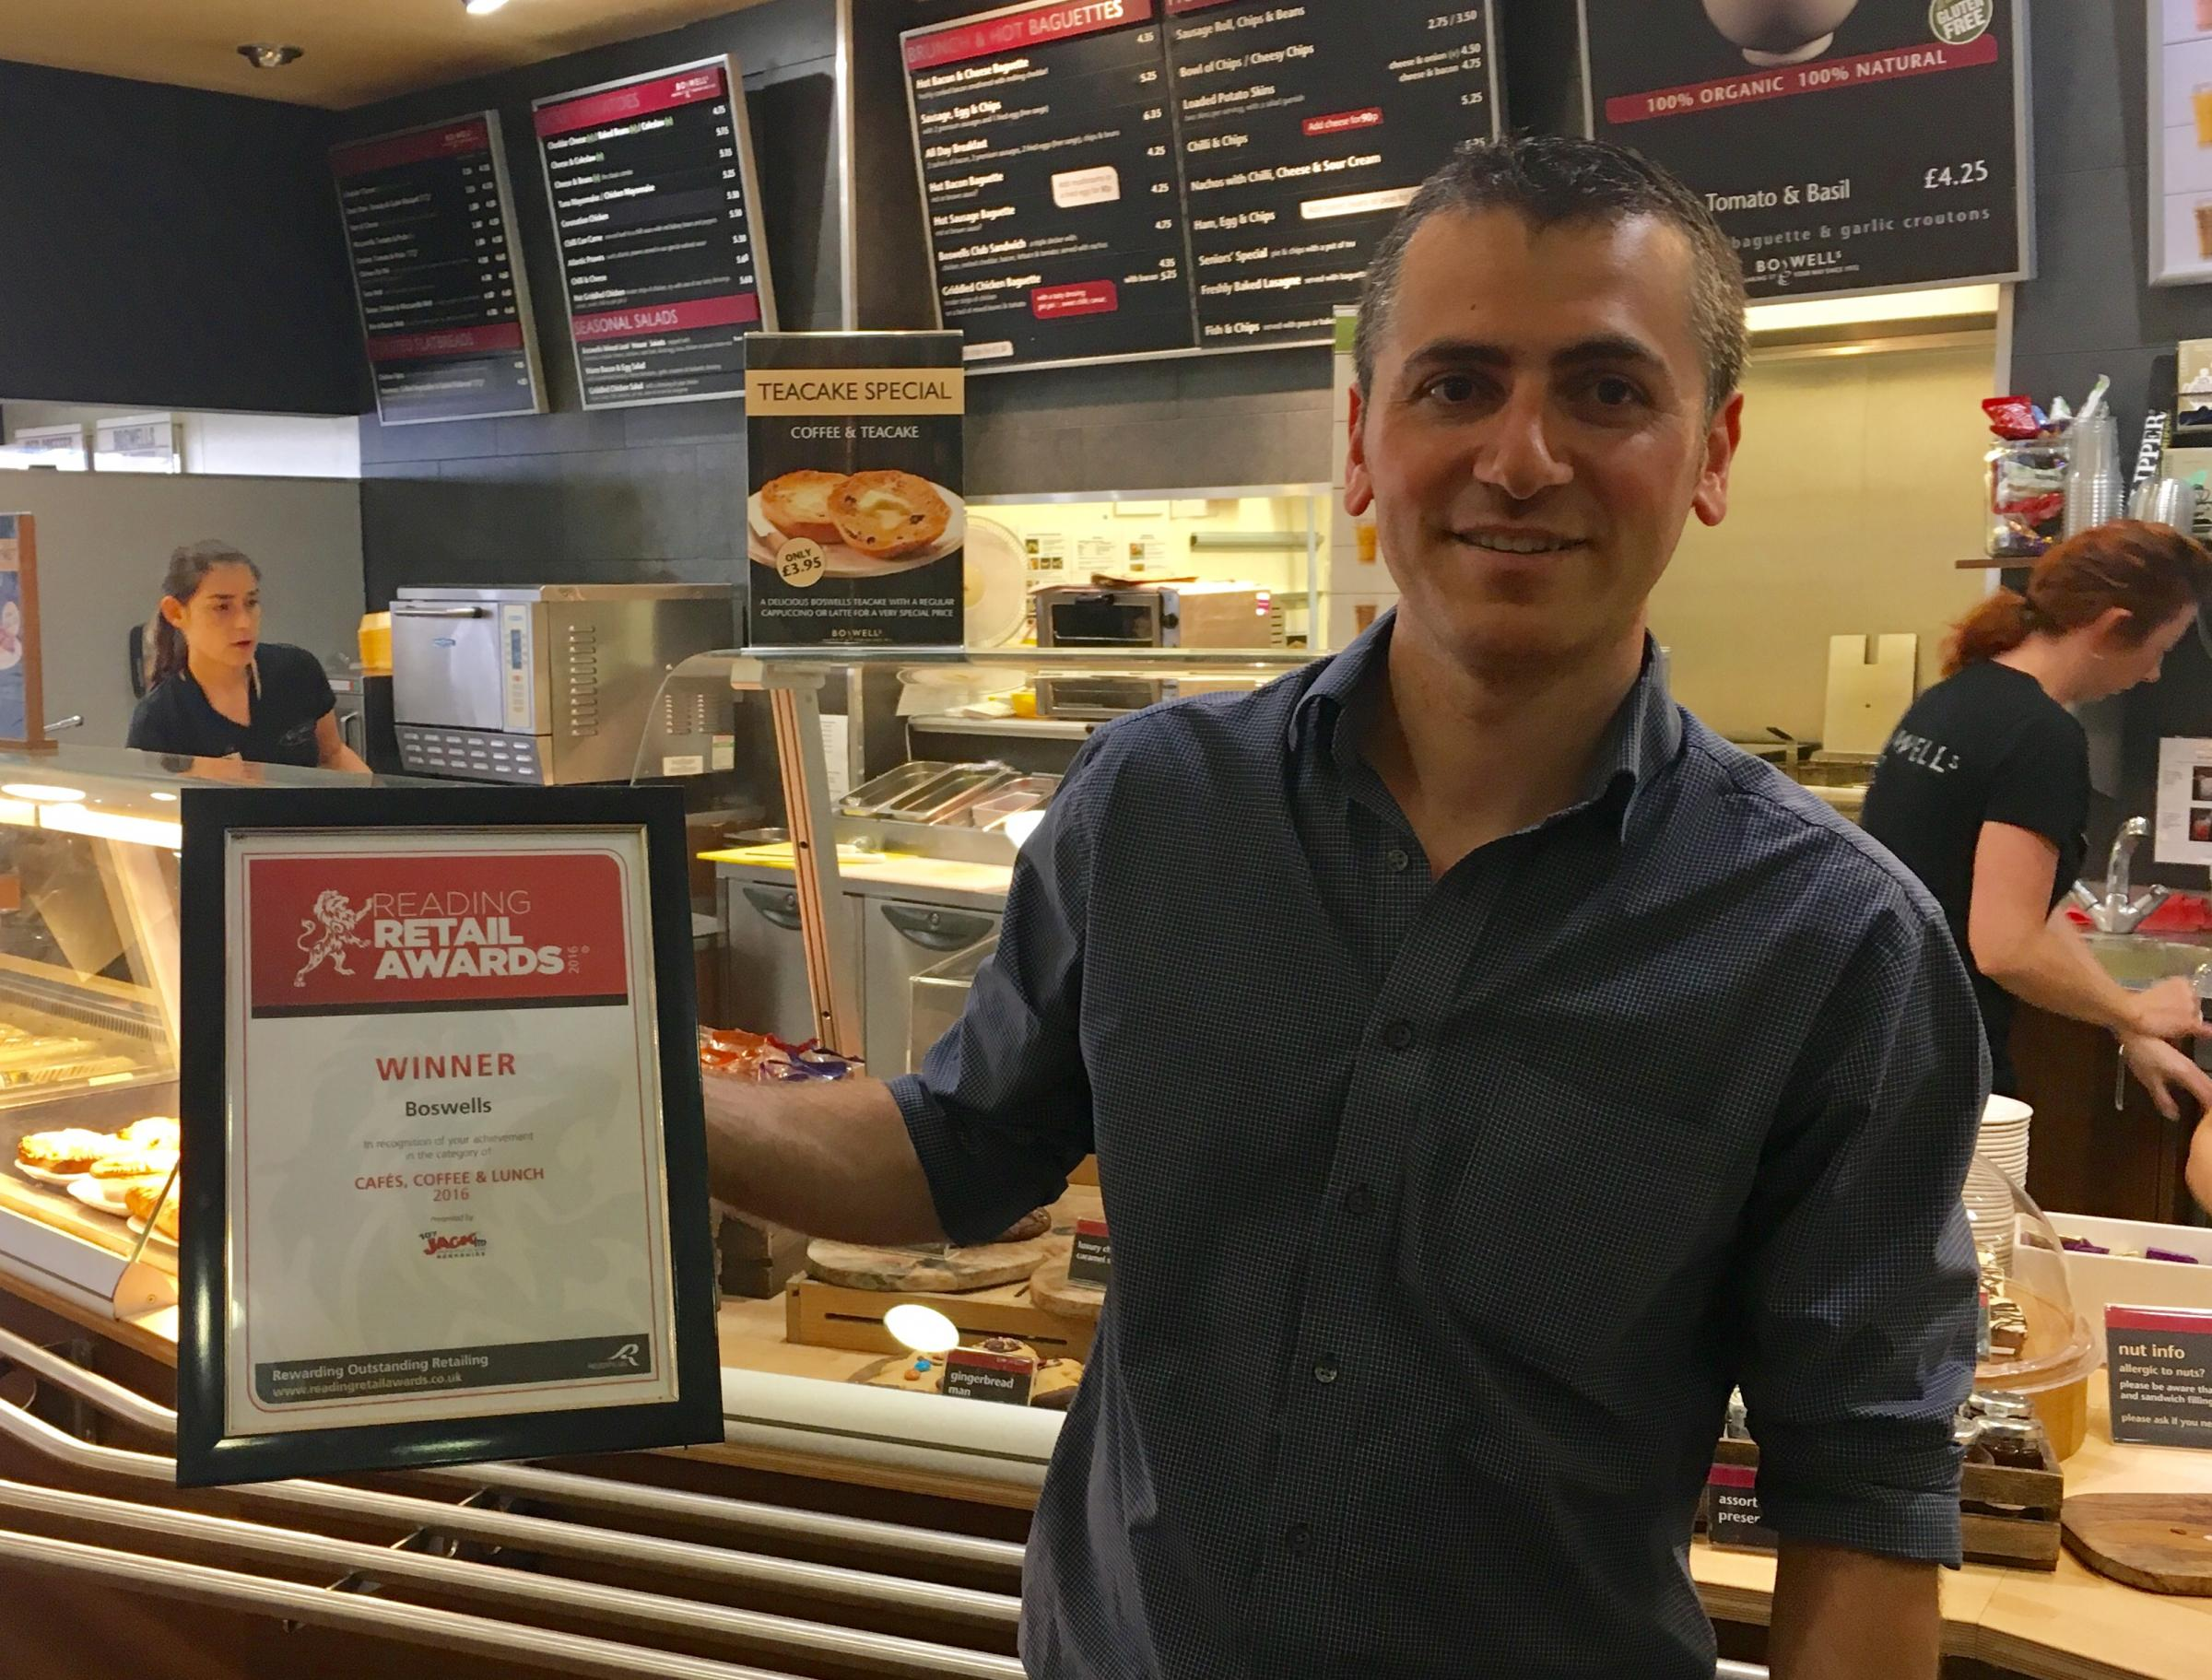 Adam Agirbas, manager of Boswells, proudly holds his award as the leader of the best cafe in Reading